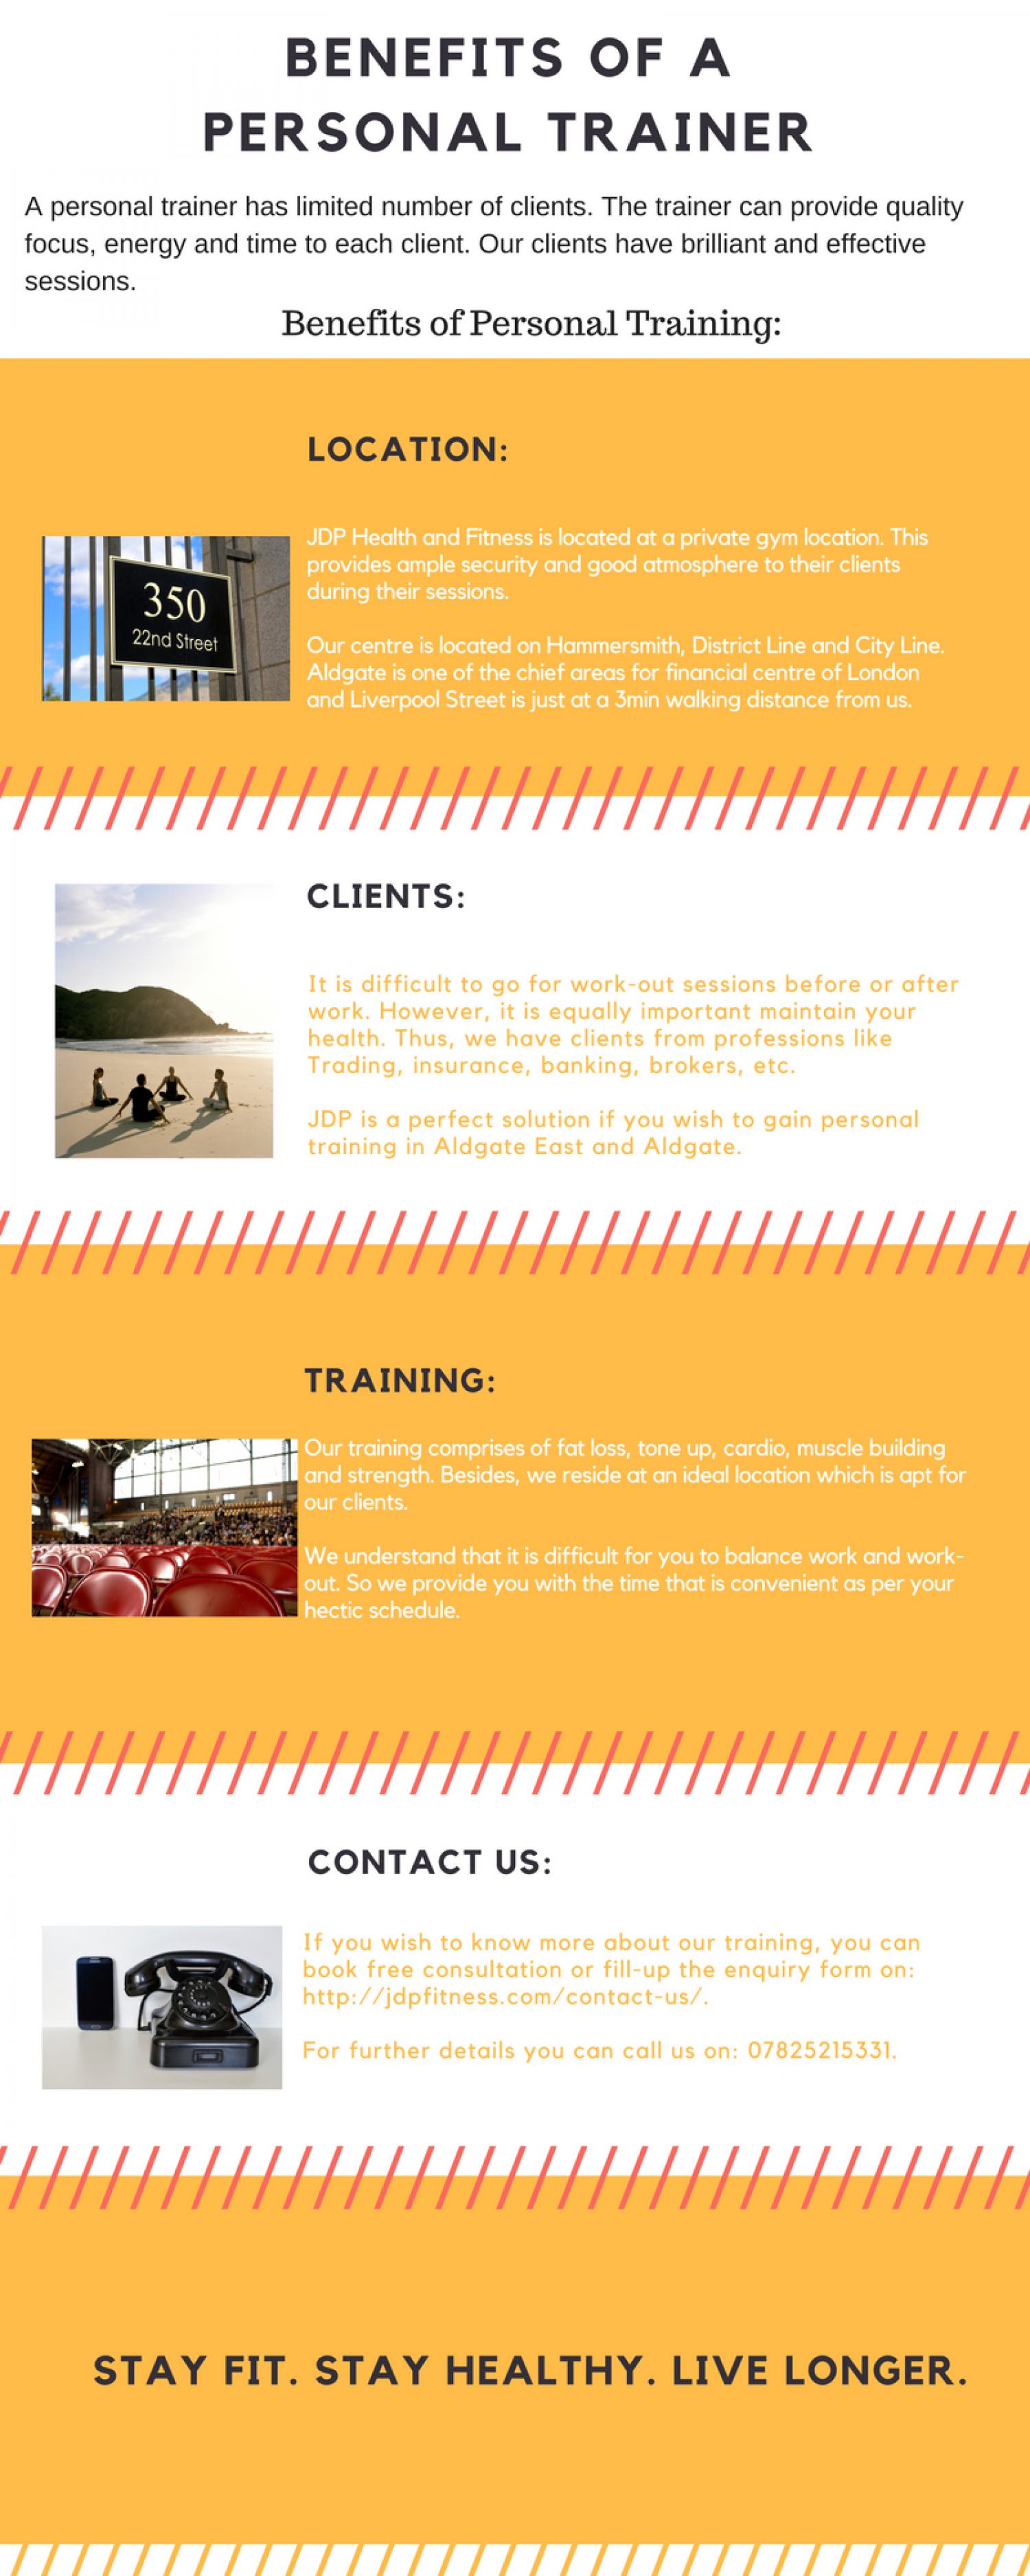 Benefits of a Personal Trainer Infographic